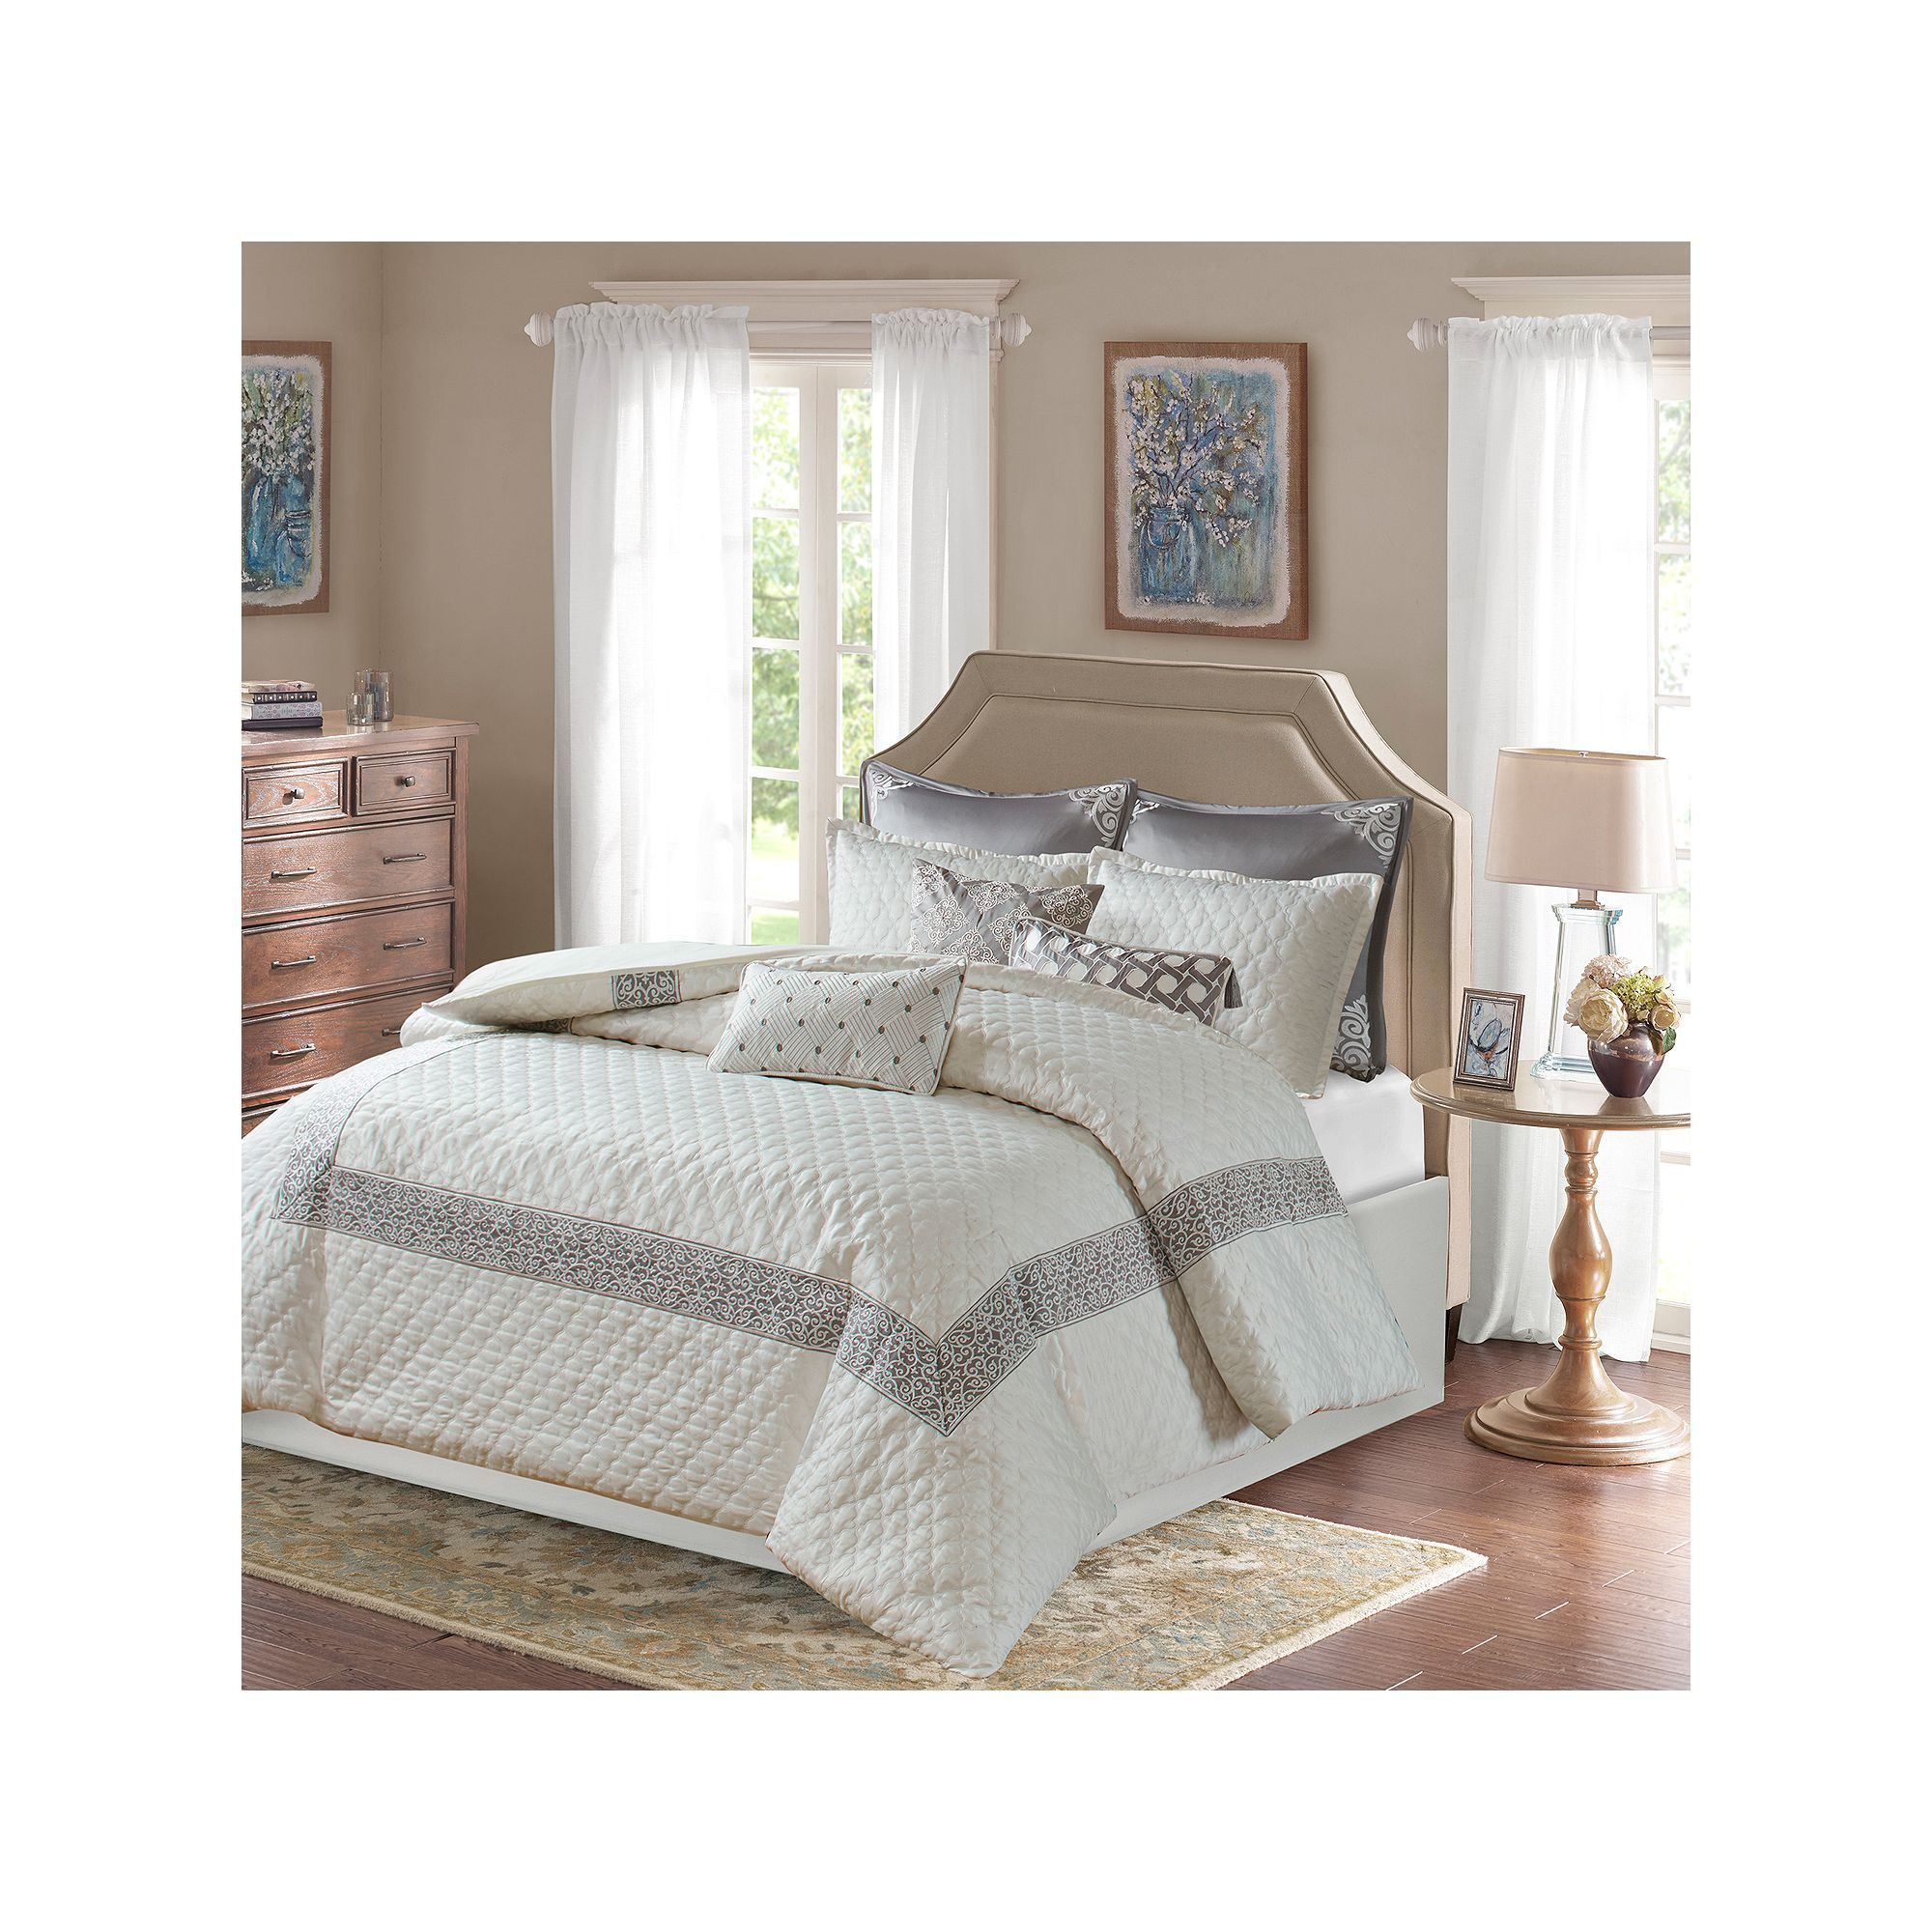 luxury collection marvellous with headboards bedding pillows queen also gorgeous olson using olsonwith hotel curtains beautiful awesome candice bedroom and ideas candace comforter plus